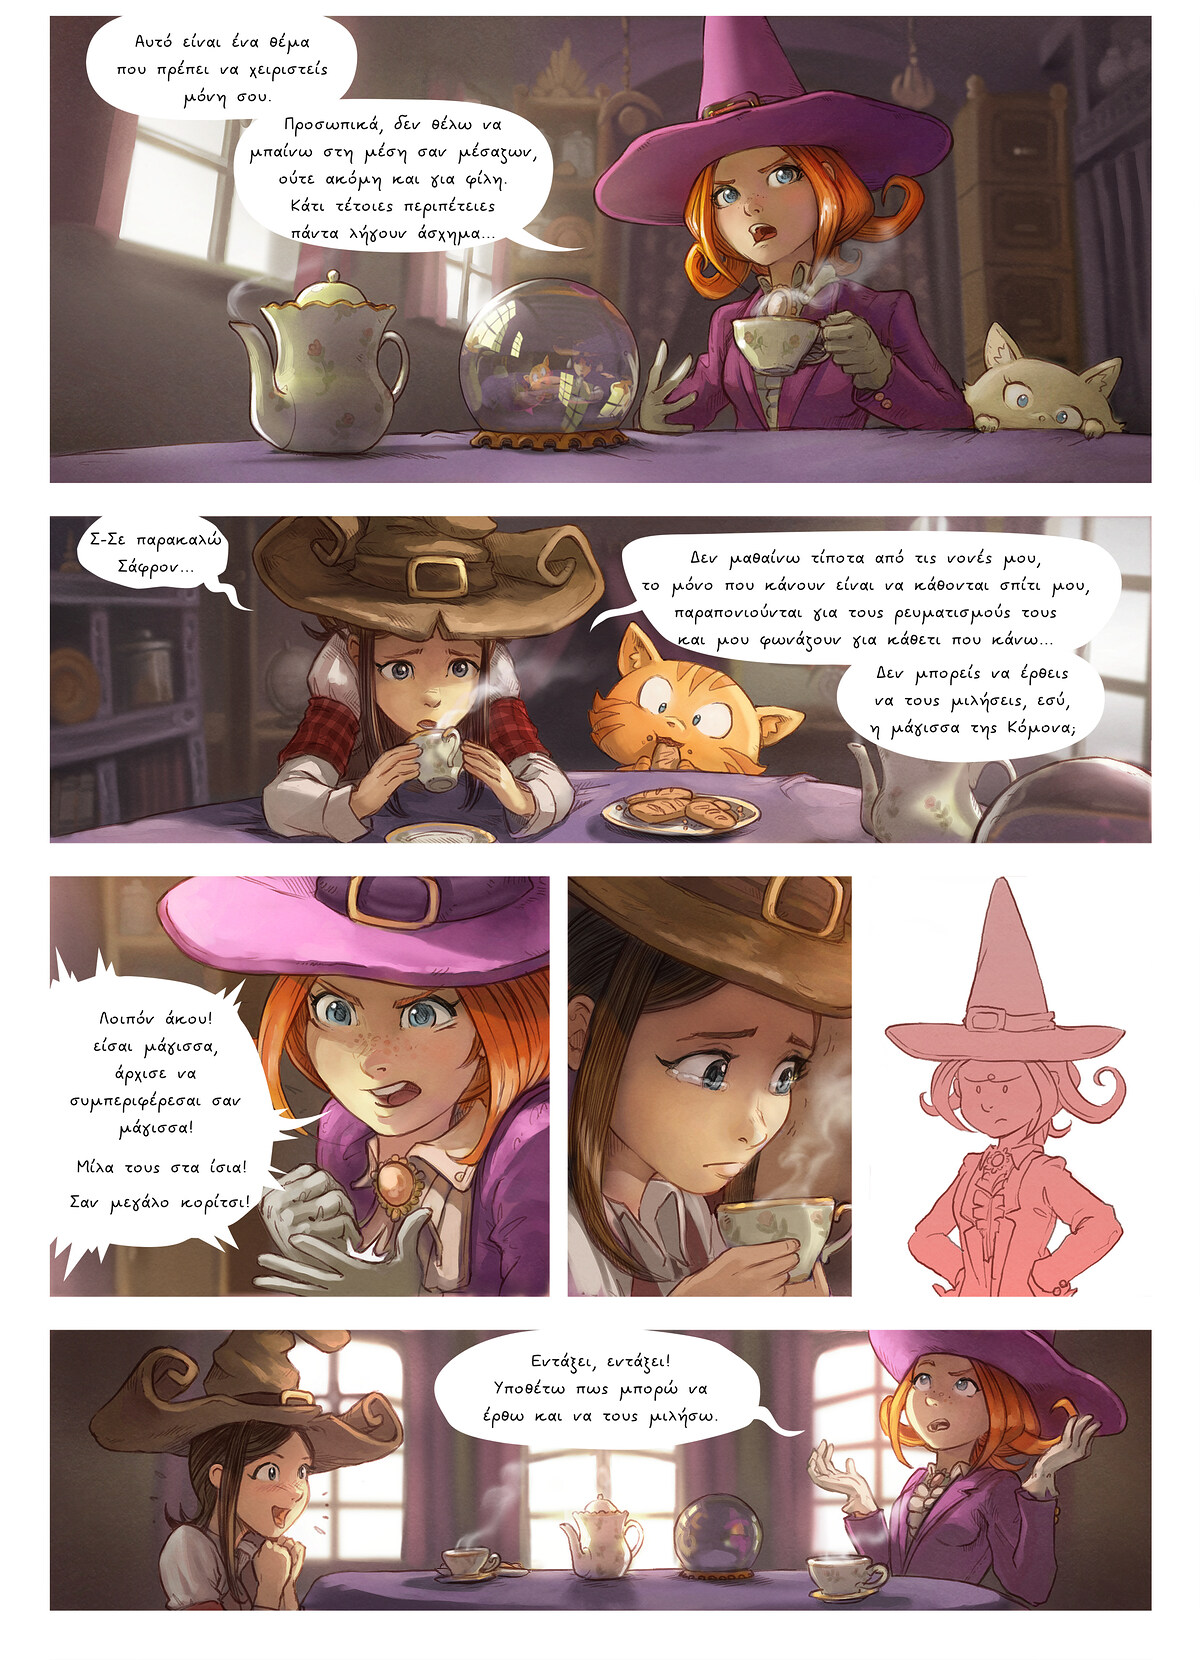 A webcomic page of Pepper&Carrot, episode 16 [el], page 2